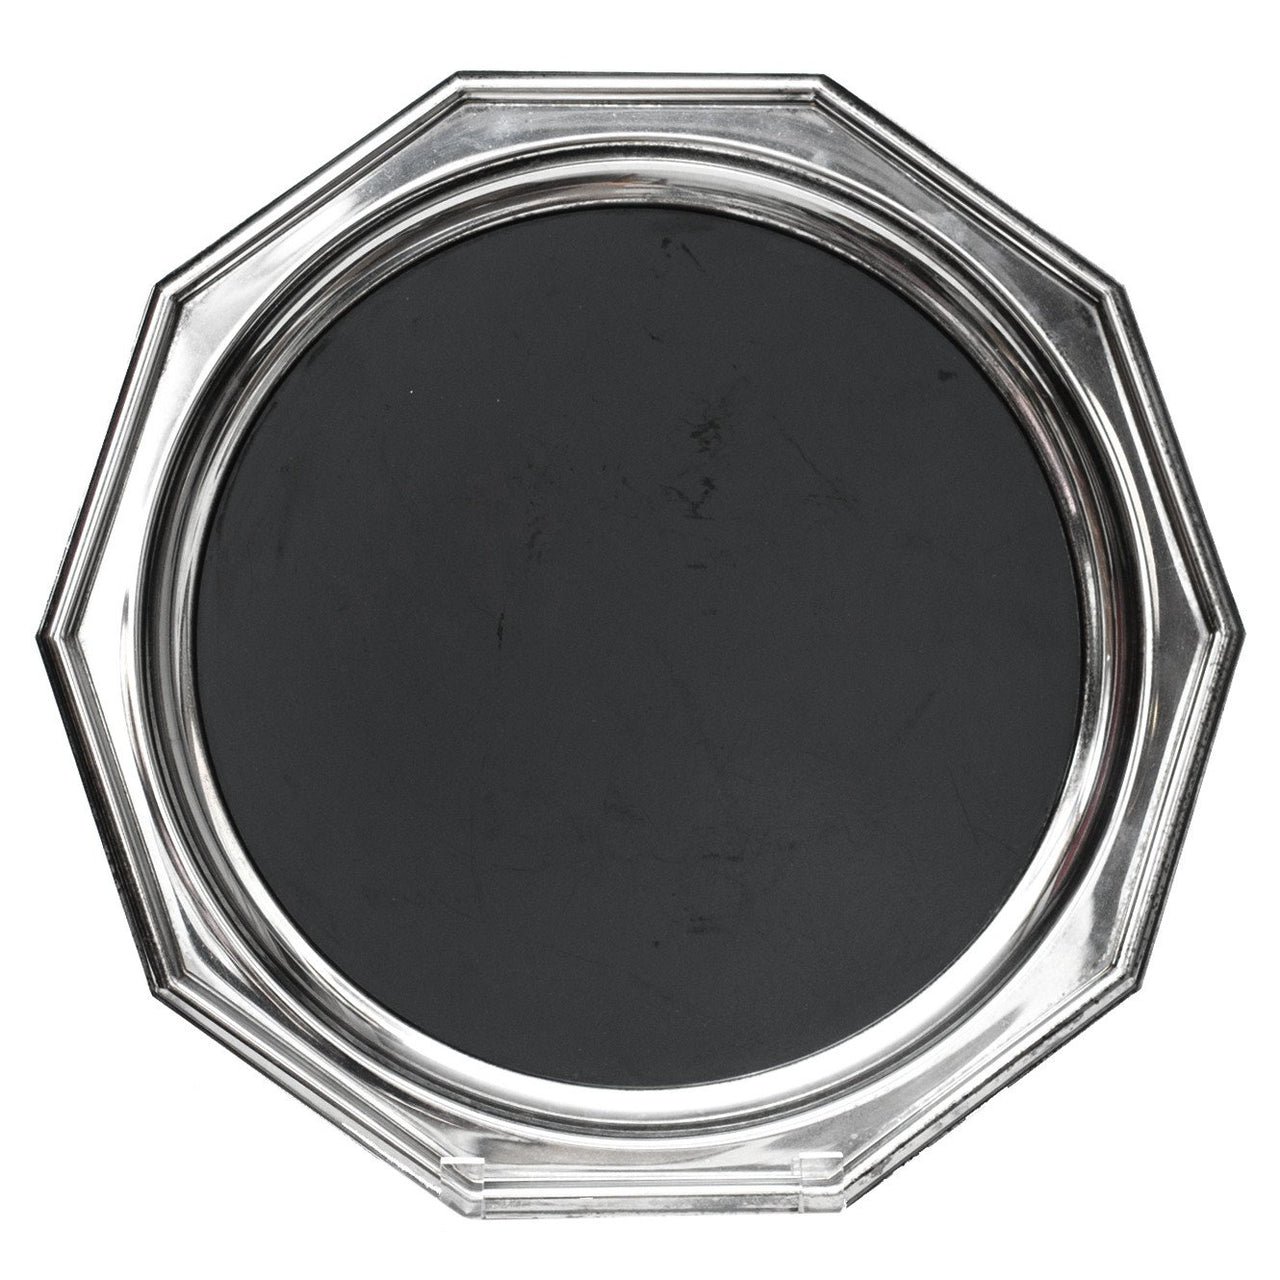 Sheffield Black & Silver Plate Tray, The Hour Shop Vintage Barware